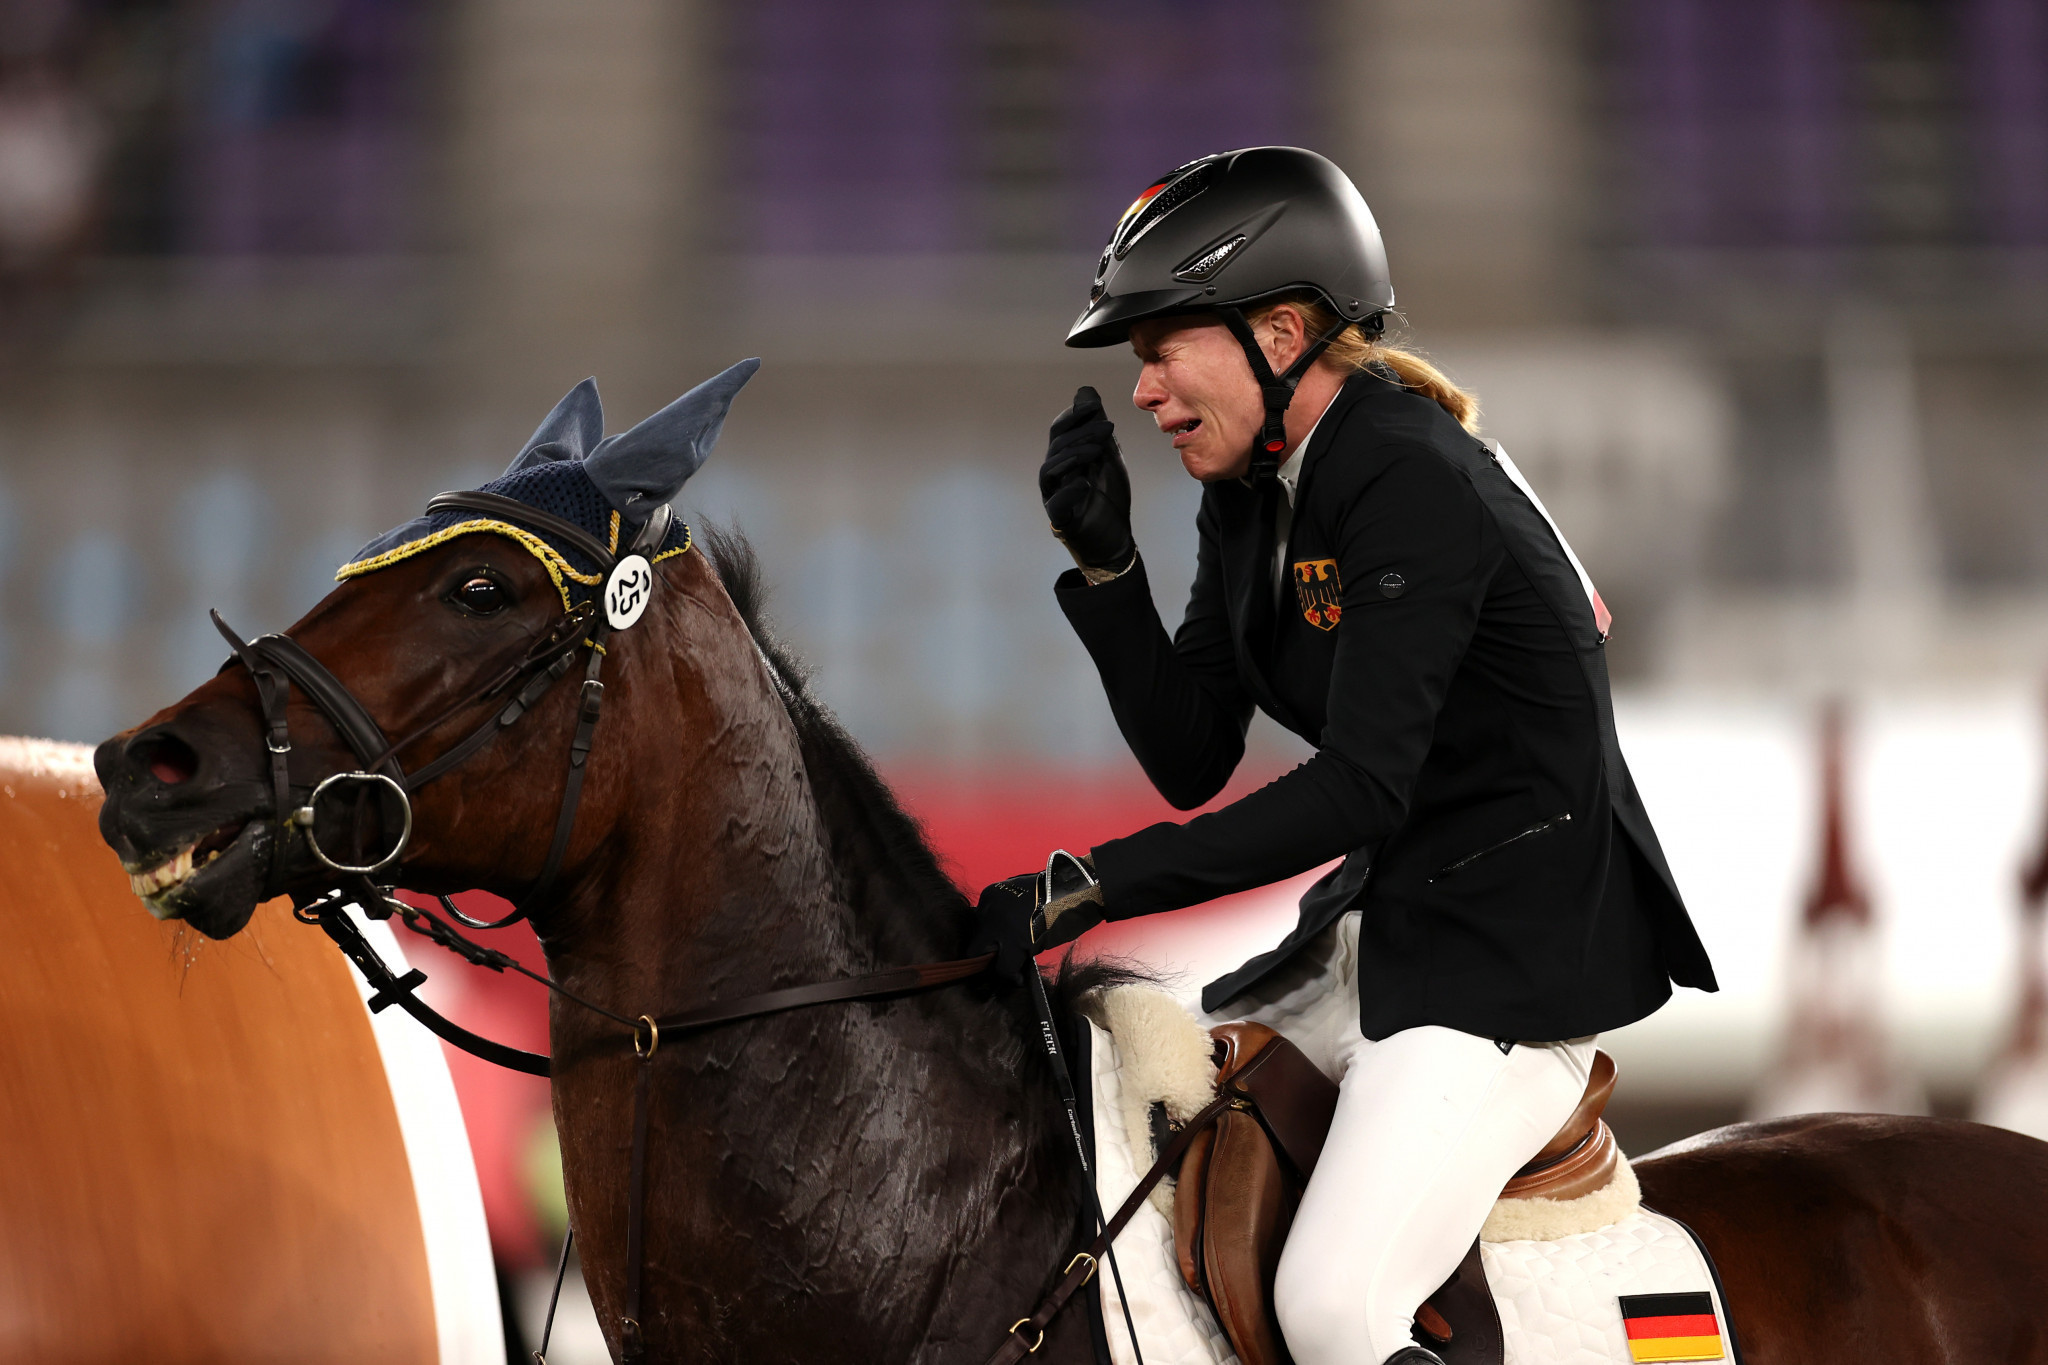 Germany's Annika Schleu broke down in tears after Saint Boy refused to jump in the riding event of the modern pentathlon ©Getty Images